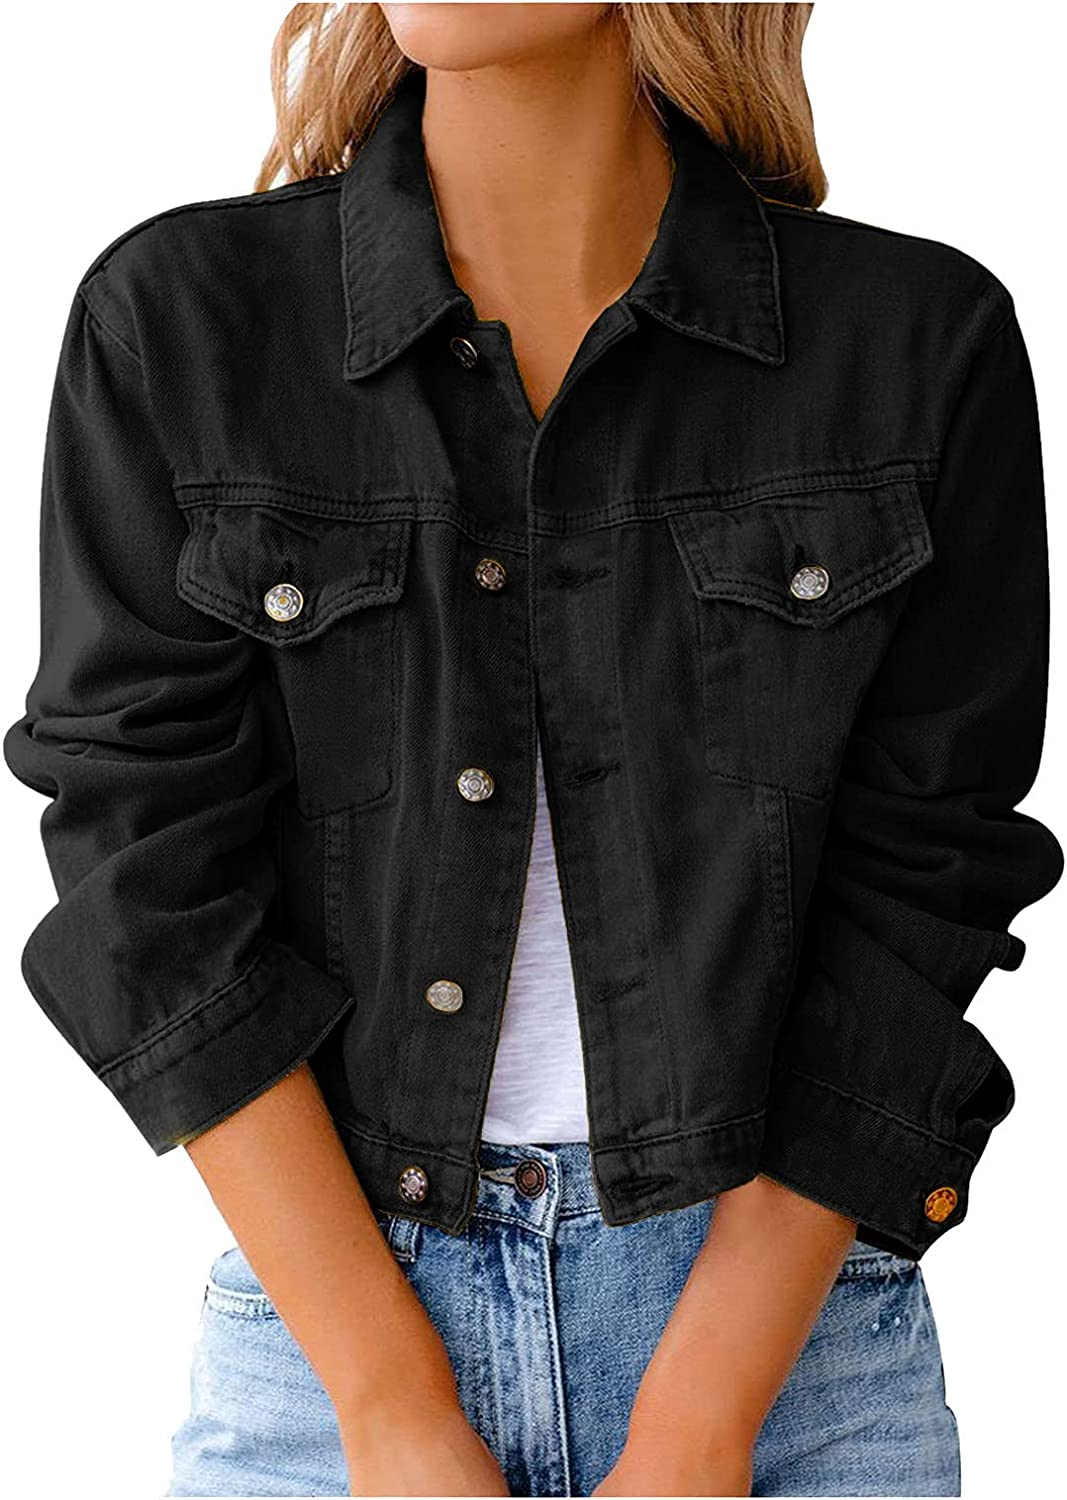 Women Casual Denim Jacket Tops Max 73% OFF Down Online limited product Vintage Sh Button Distressed